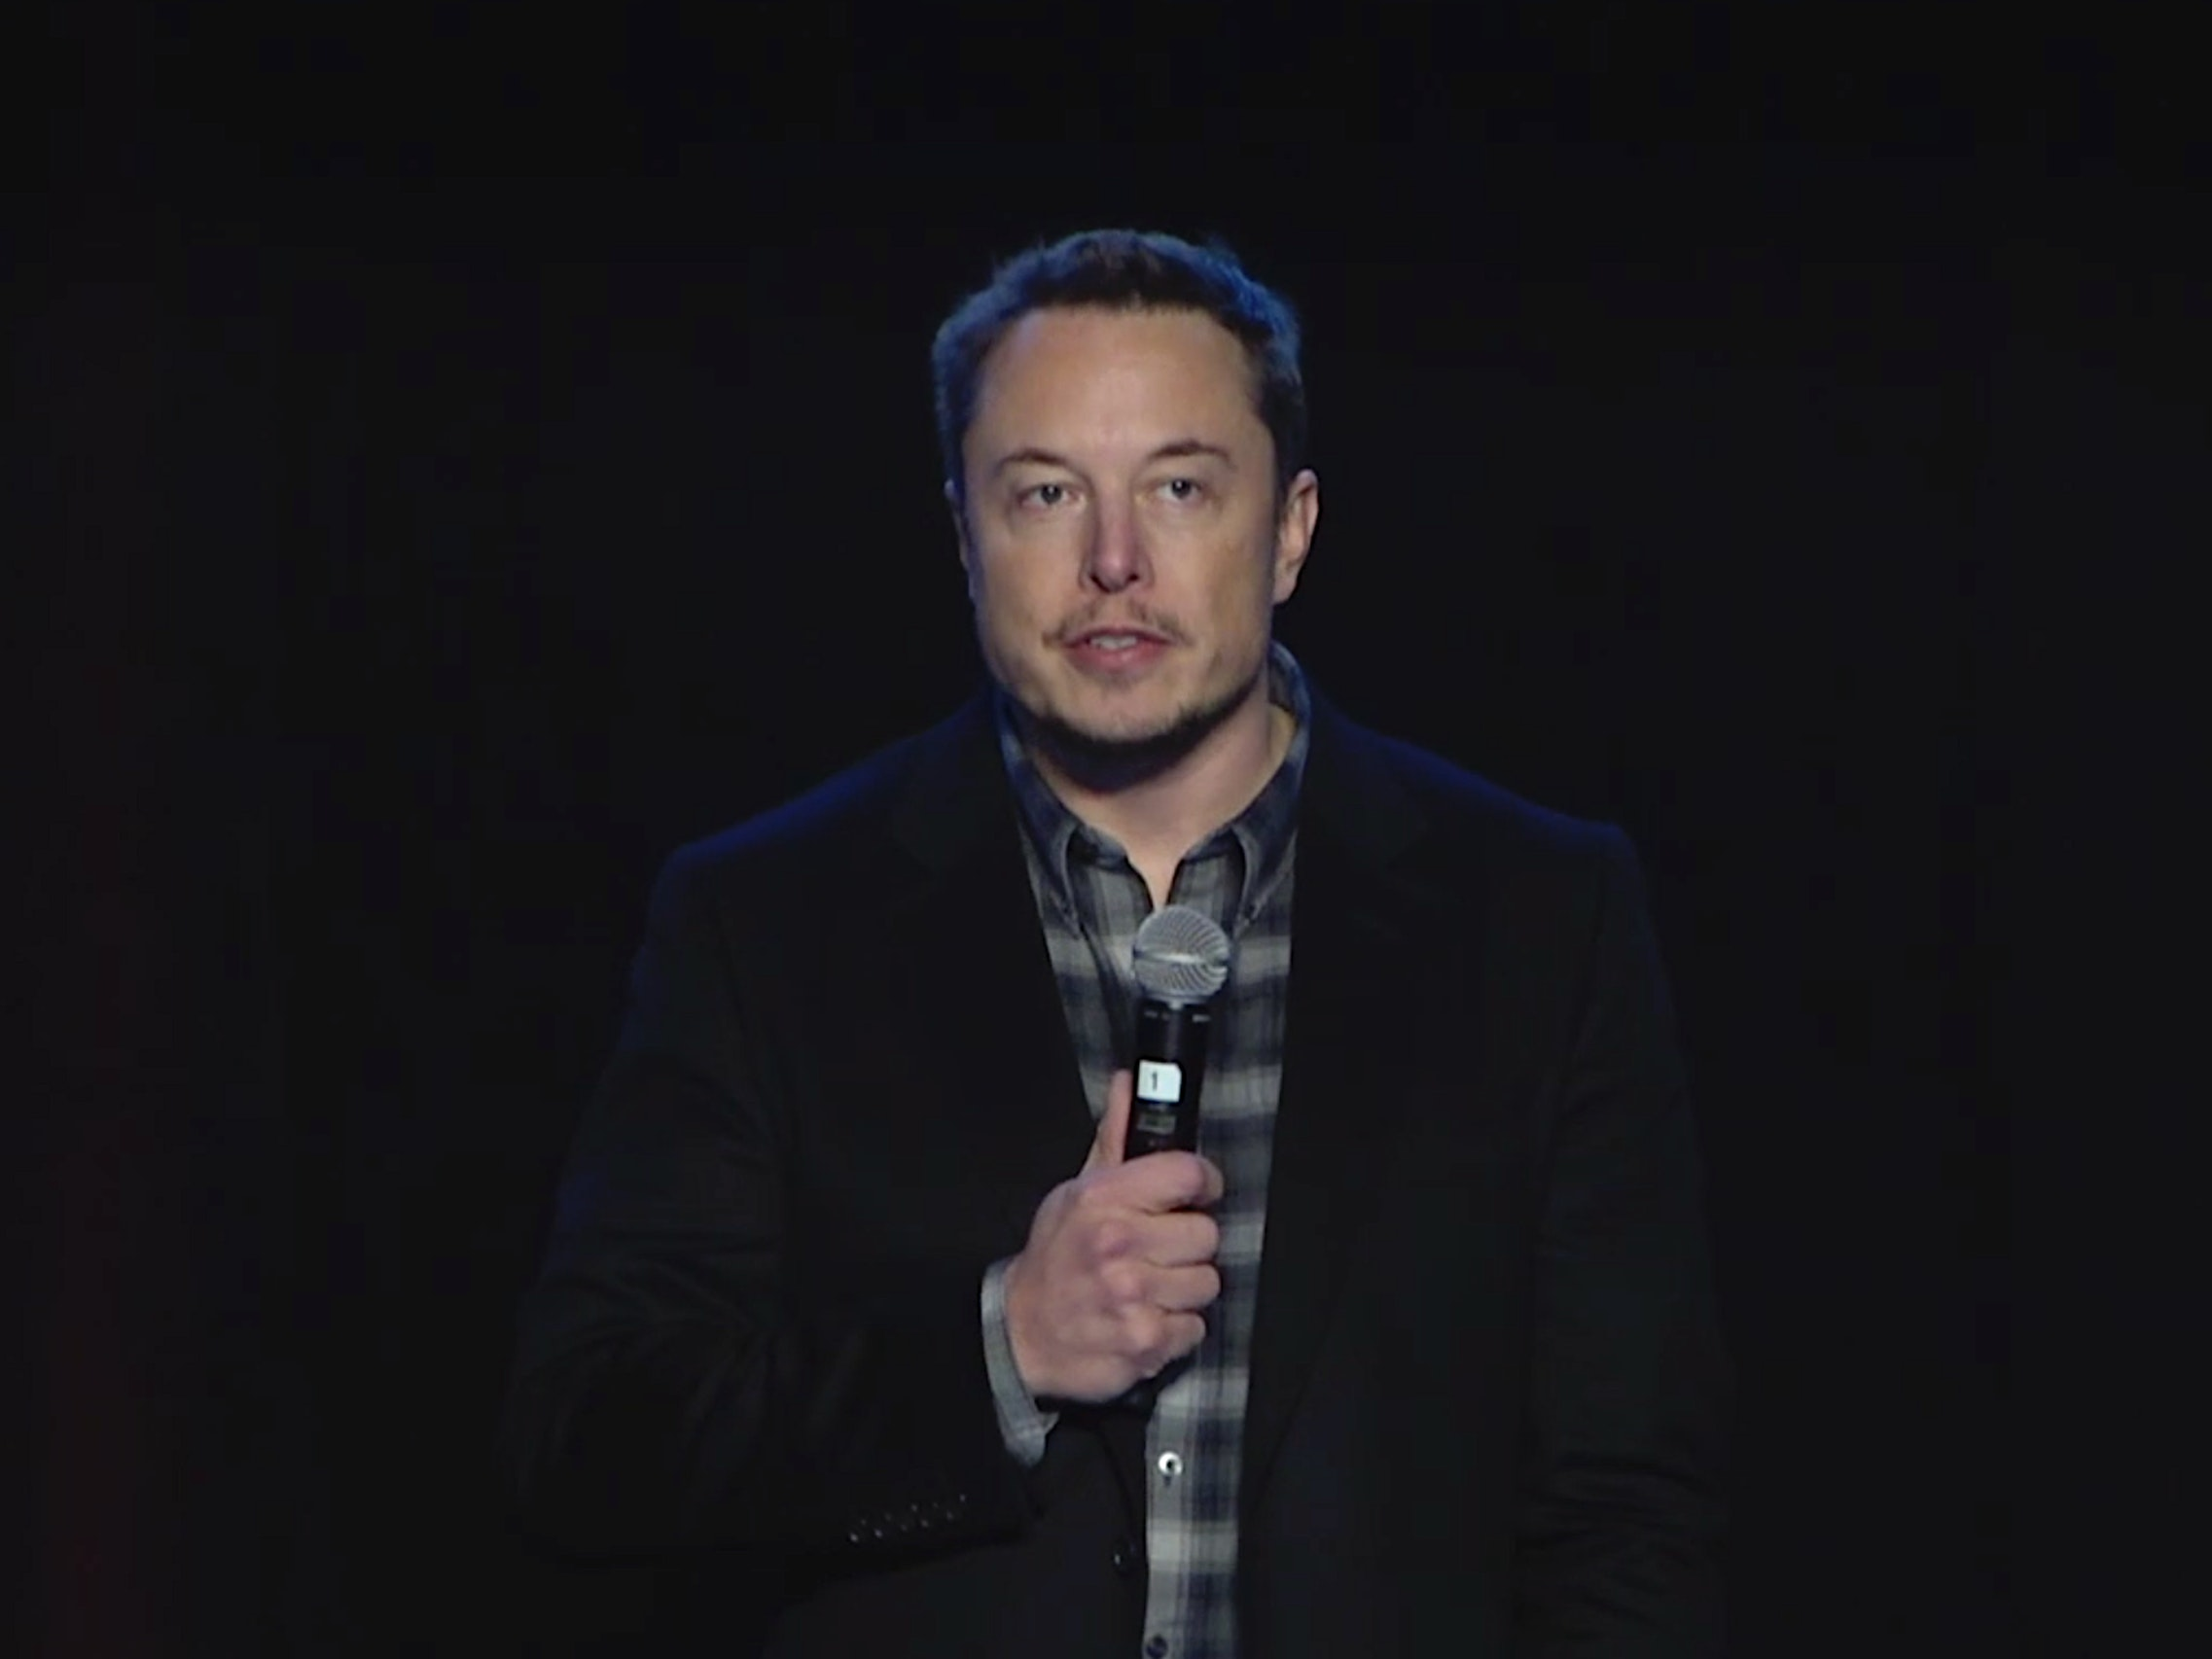 Elon during Thursday's post-vote Q&A session.